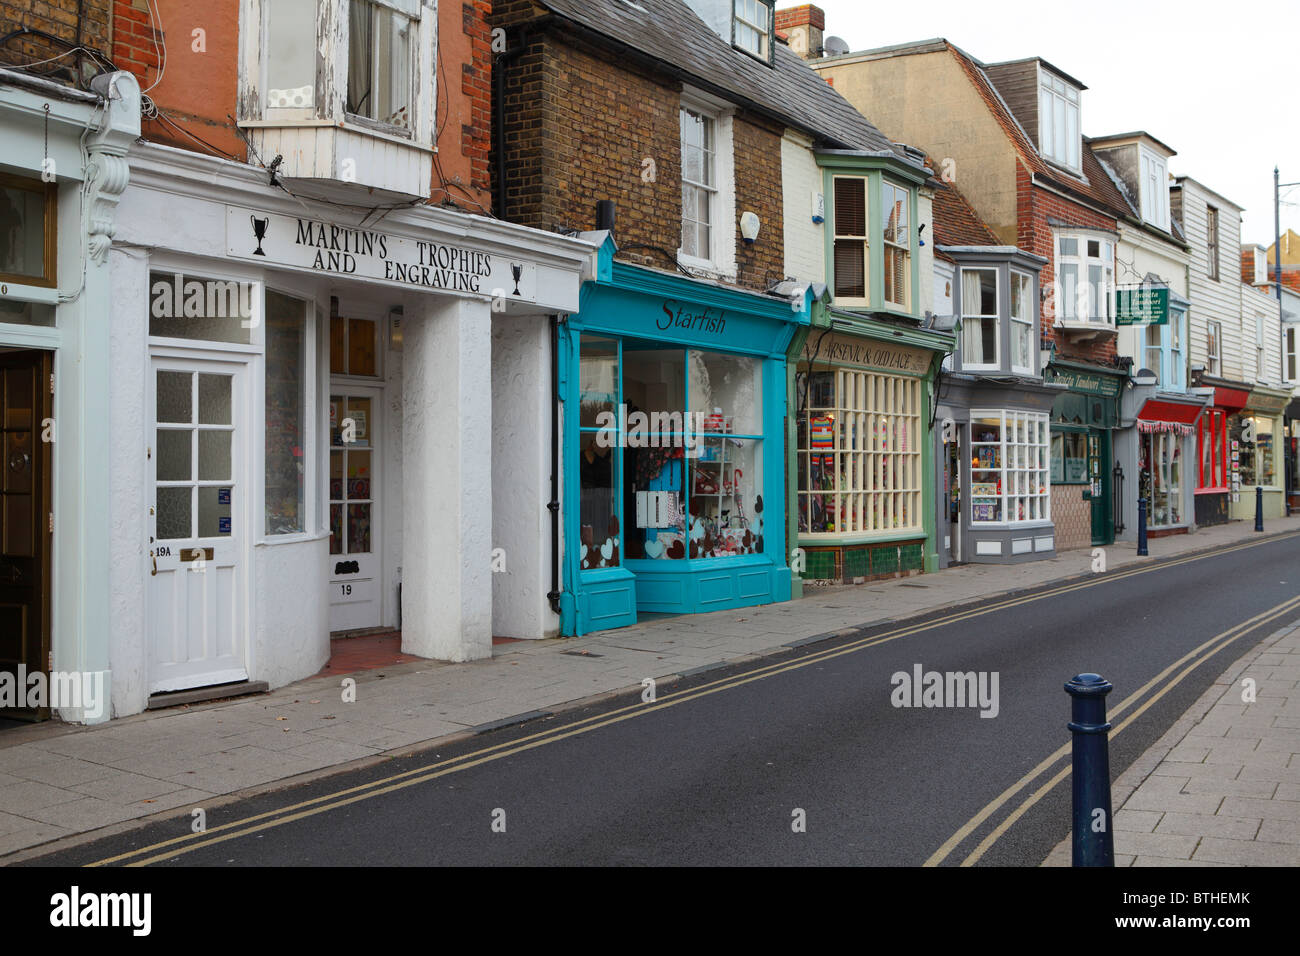 A row of shops in Harbour street - Stock Image